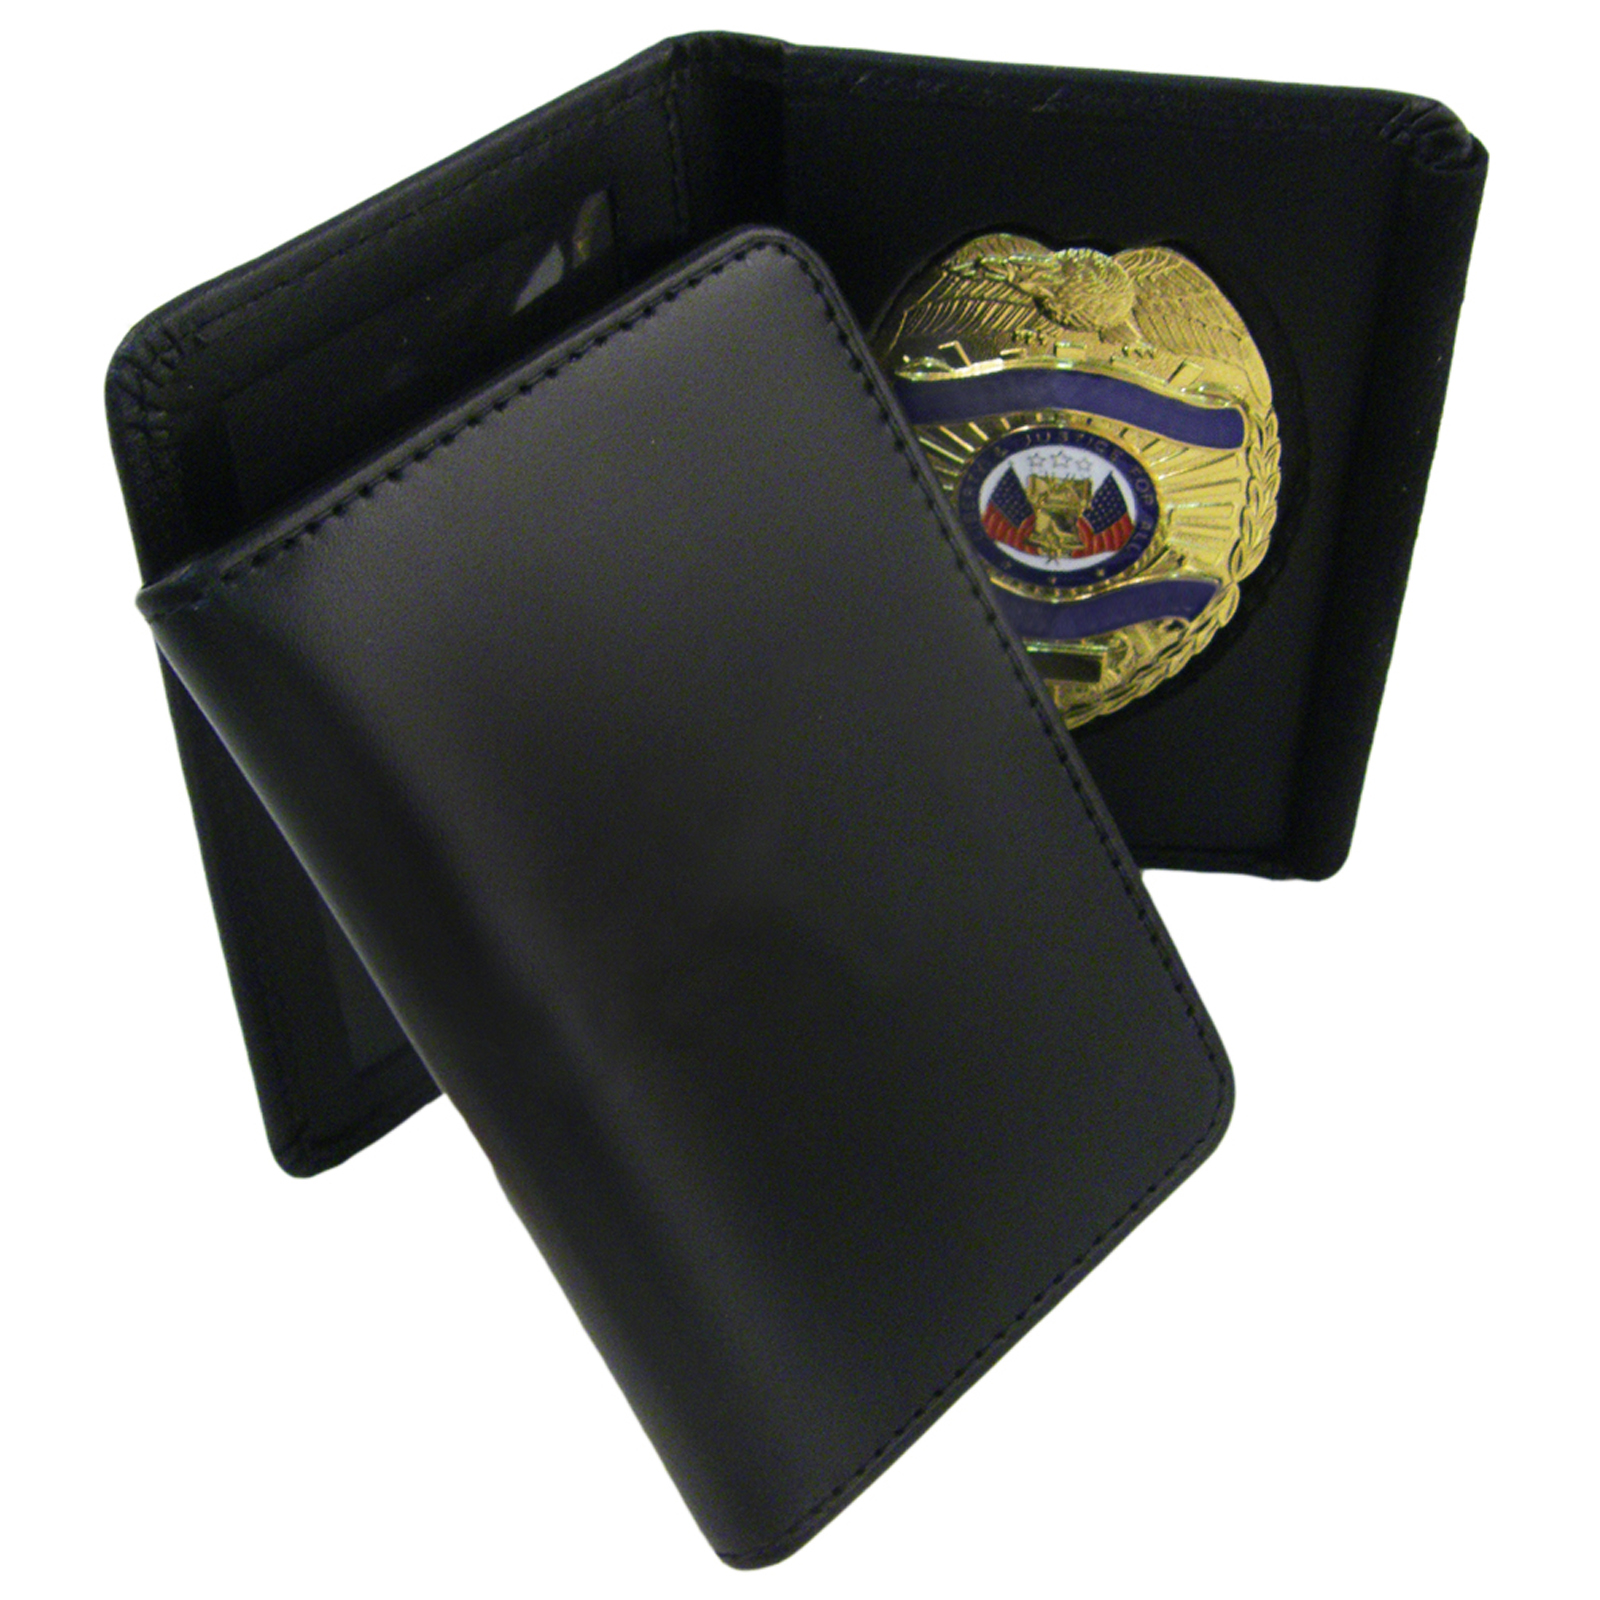 100% Genuine Leather Universal Law Enforcement Badge Holder Wallet Case - Shield